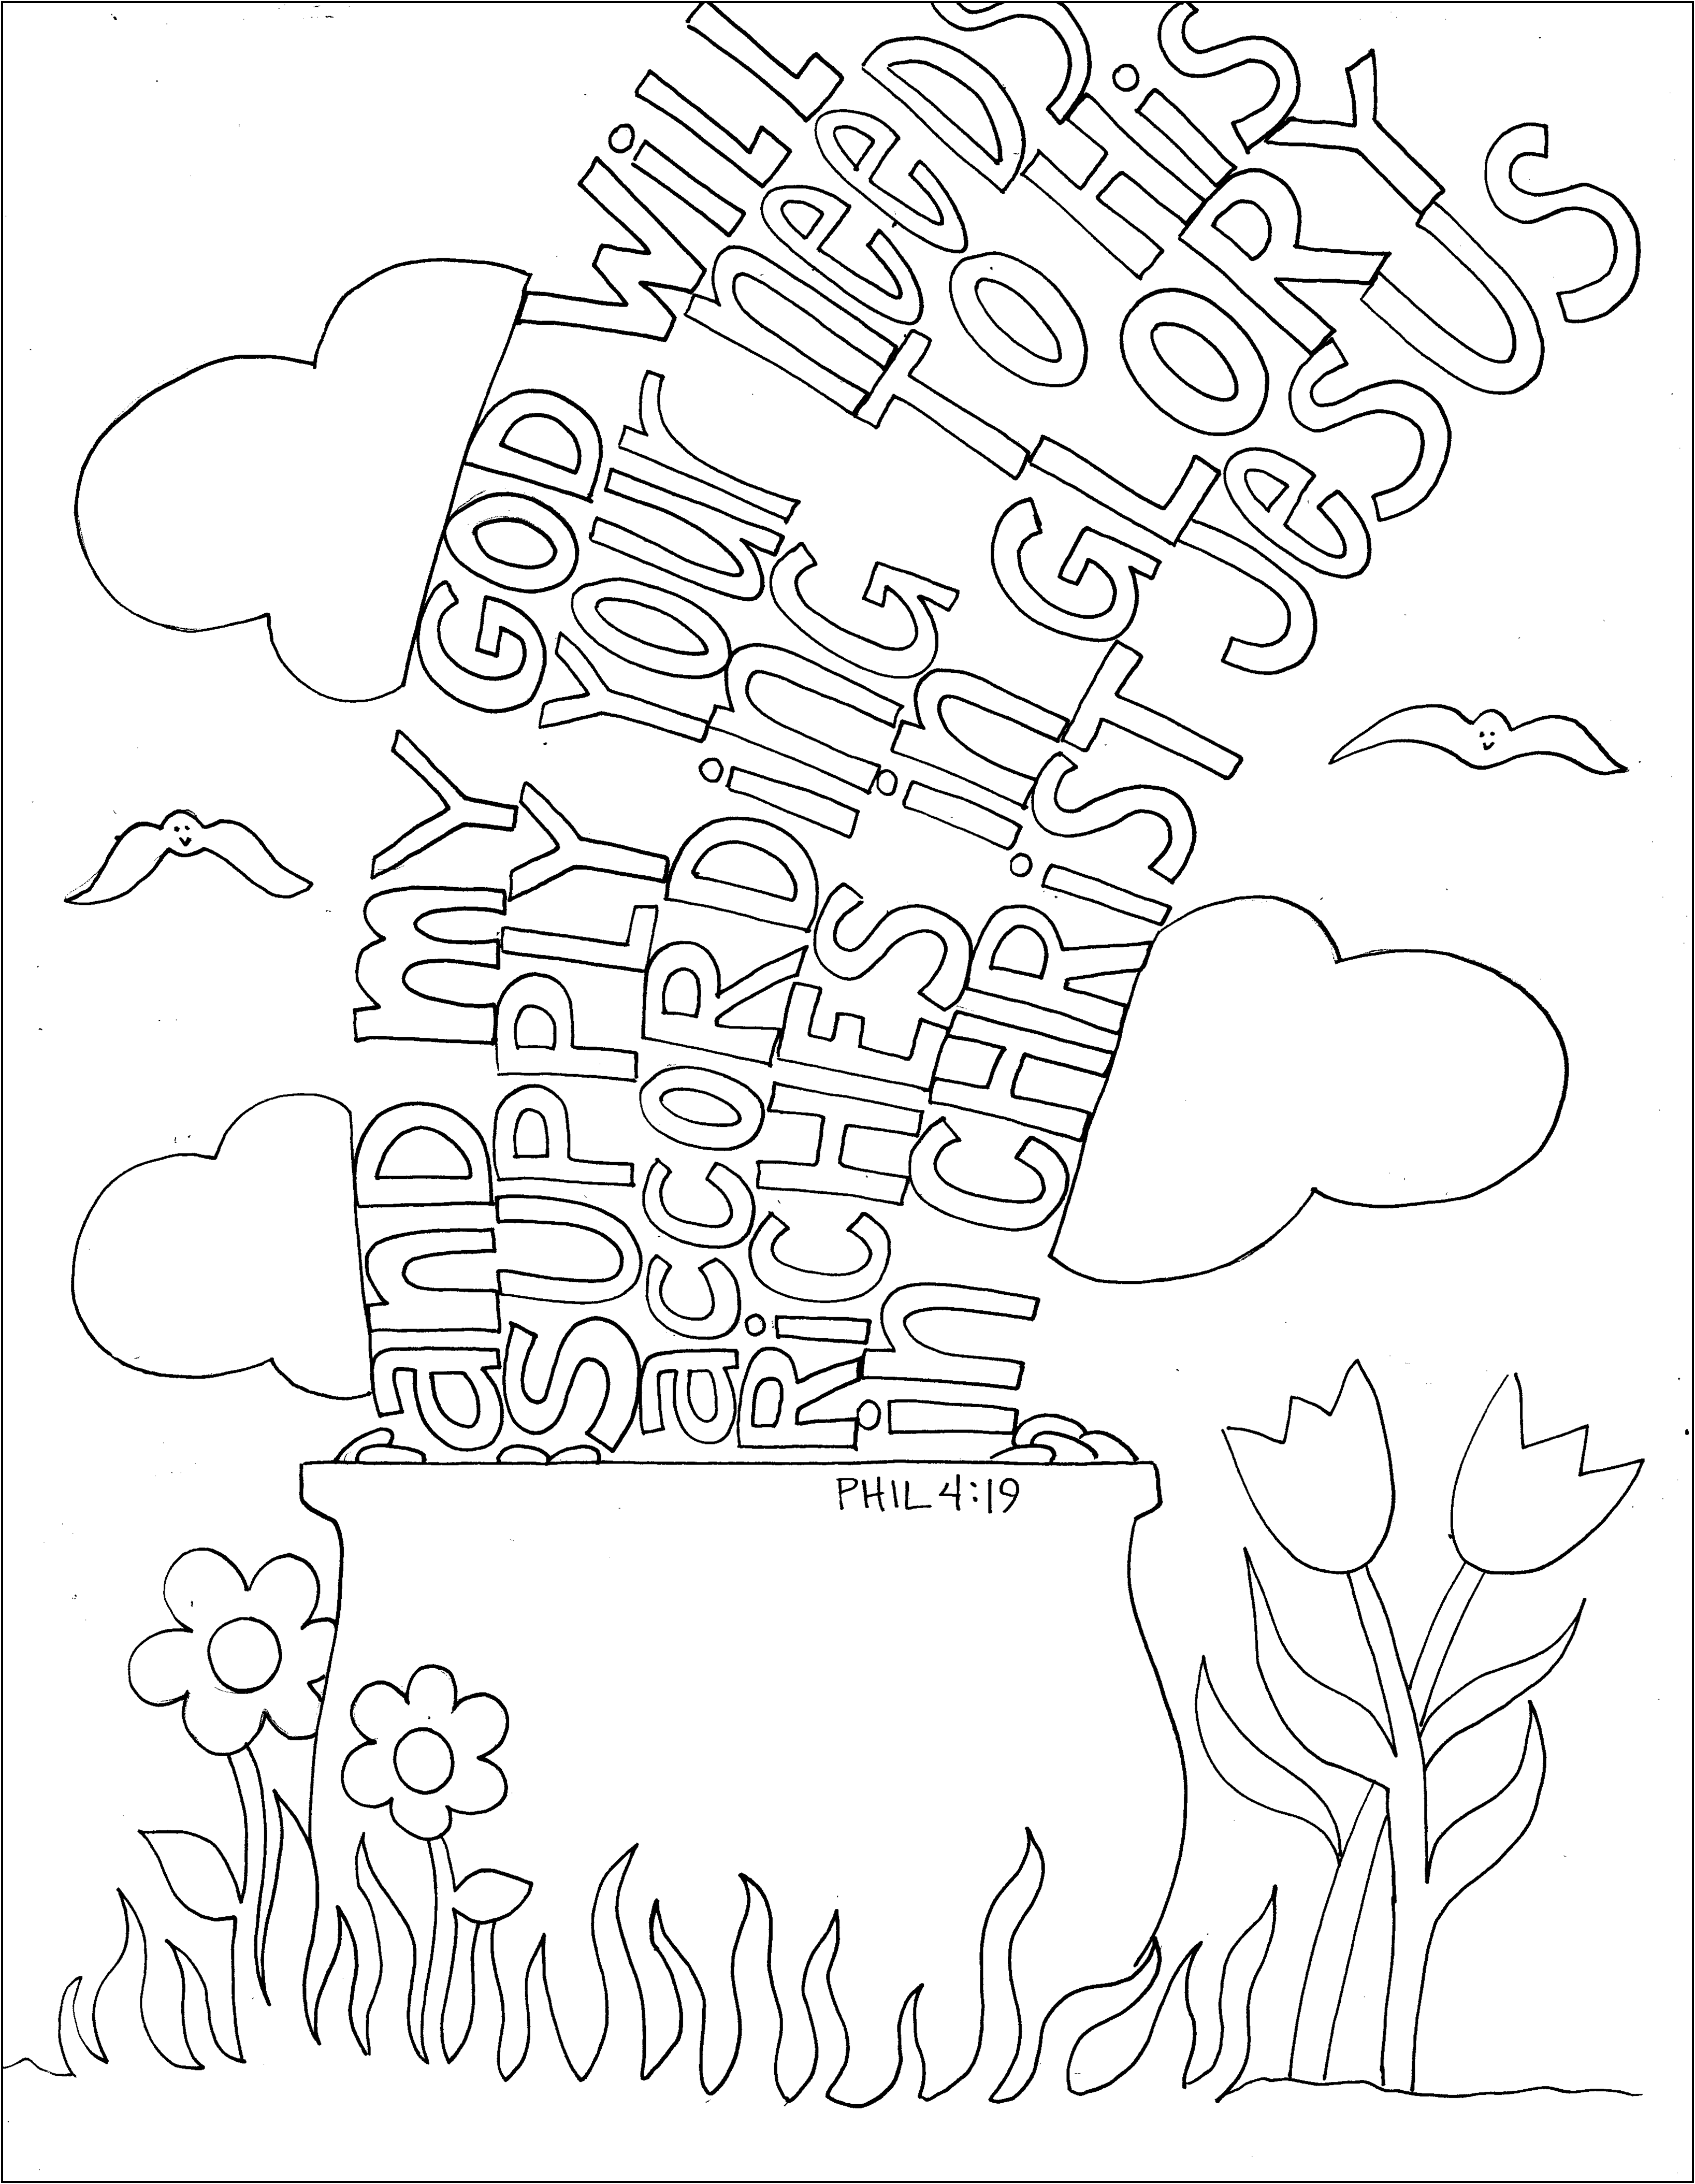 Phil 419 Coloring Page